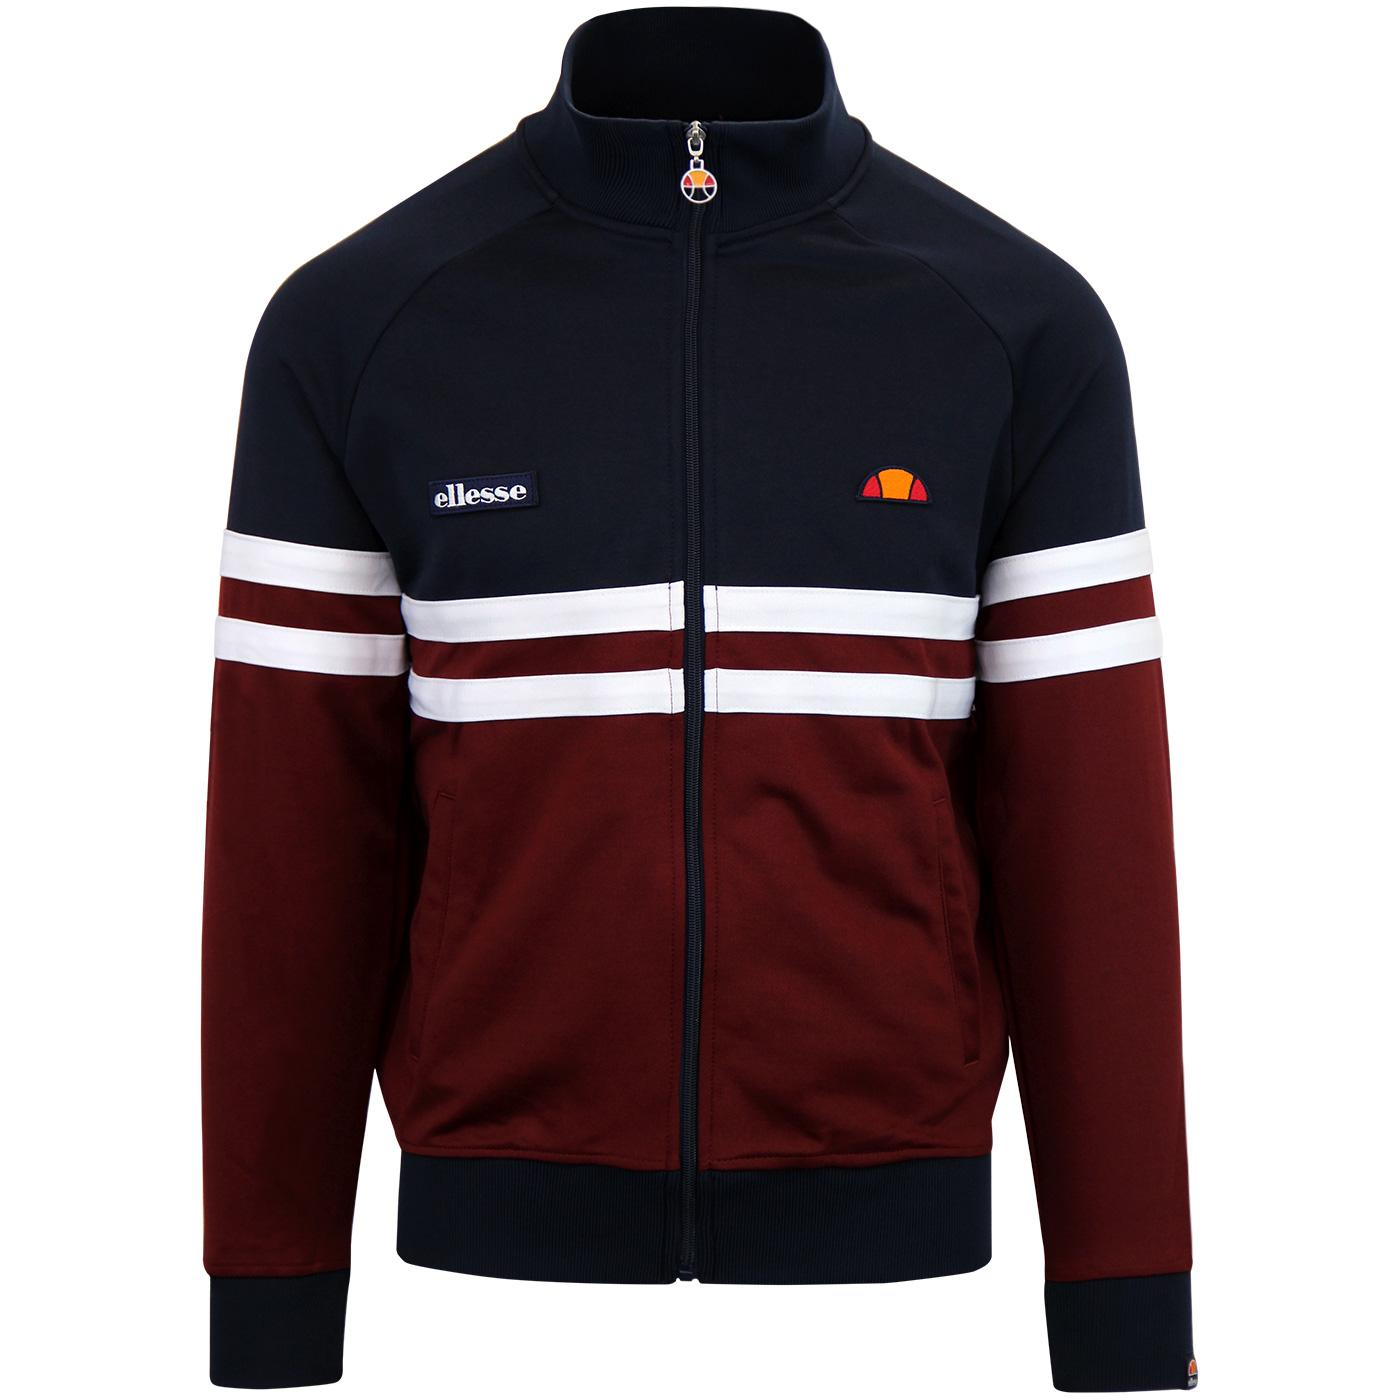 Rimini ELLESSE Retro 80s Casuals Track Top (DB)